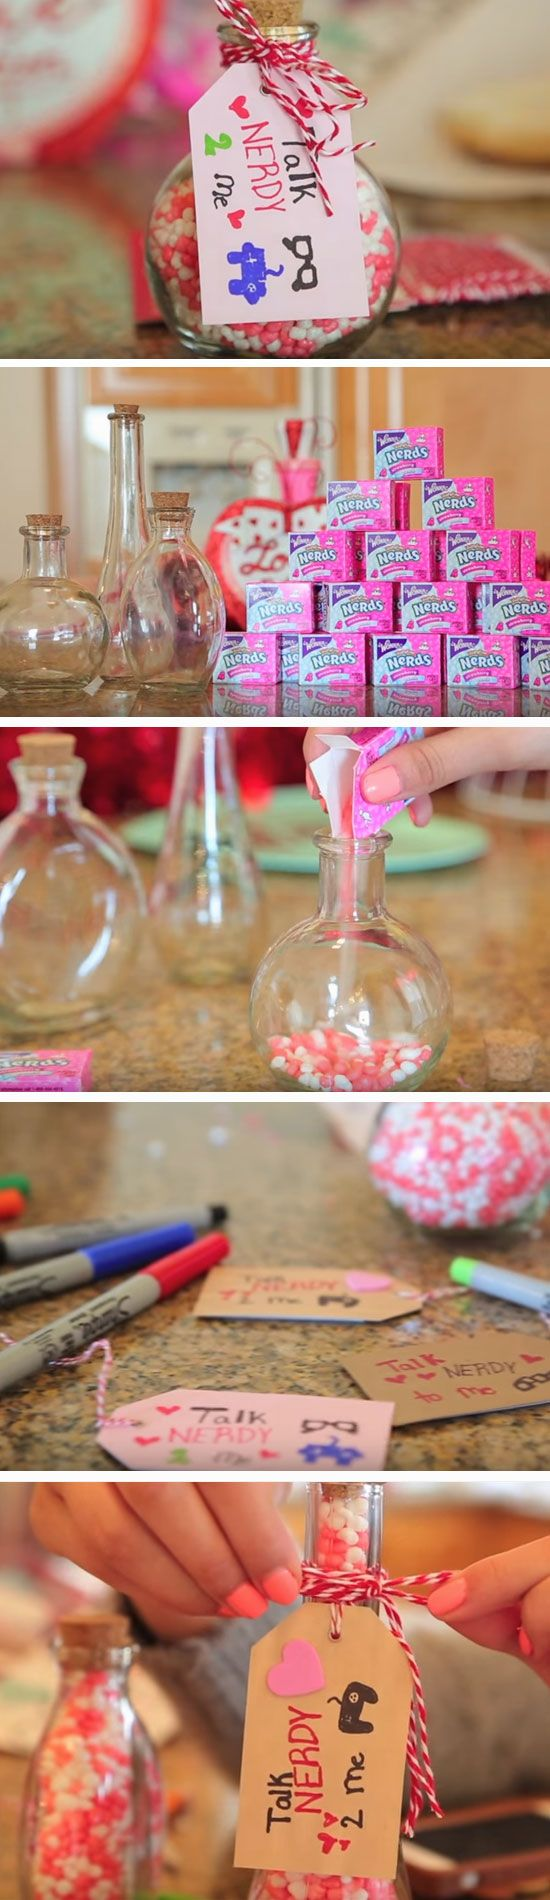 DIY Romantic Valentine's Day Ideas for Him | DIY Valentine and Kiss